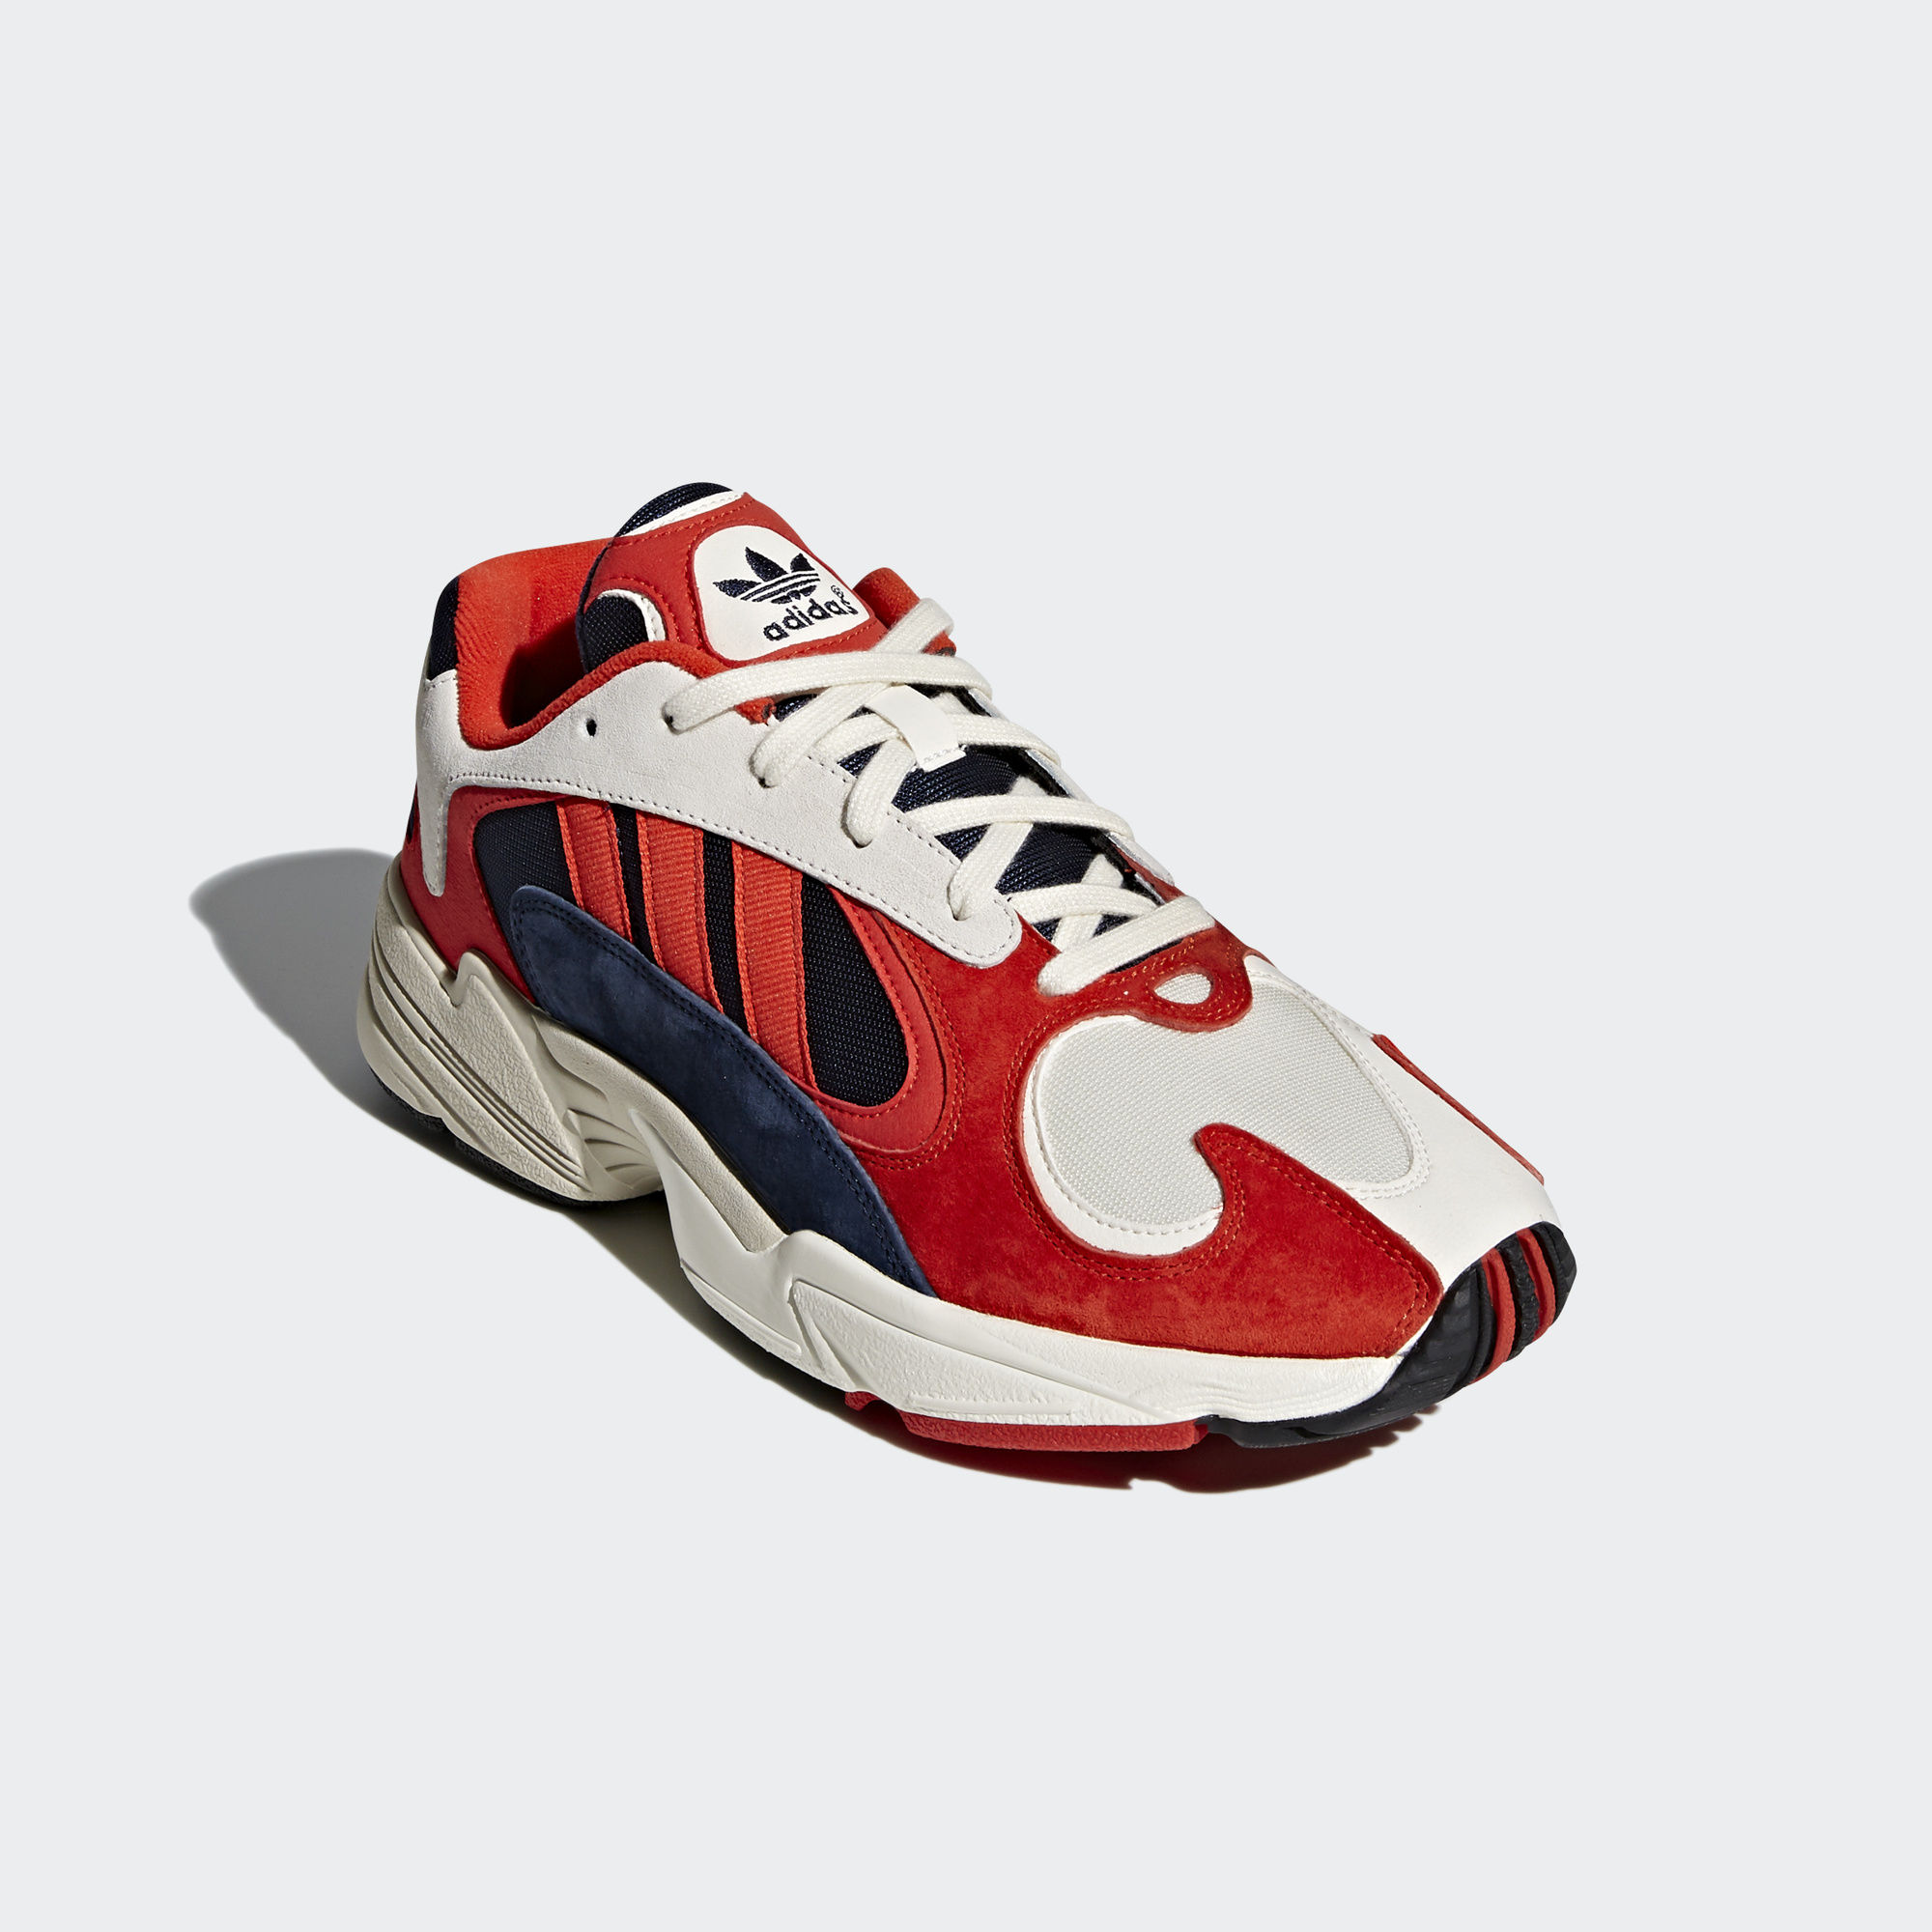 Adidas Yung 1 Orange / Core Black / Collegiate Navy (B37615)